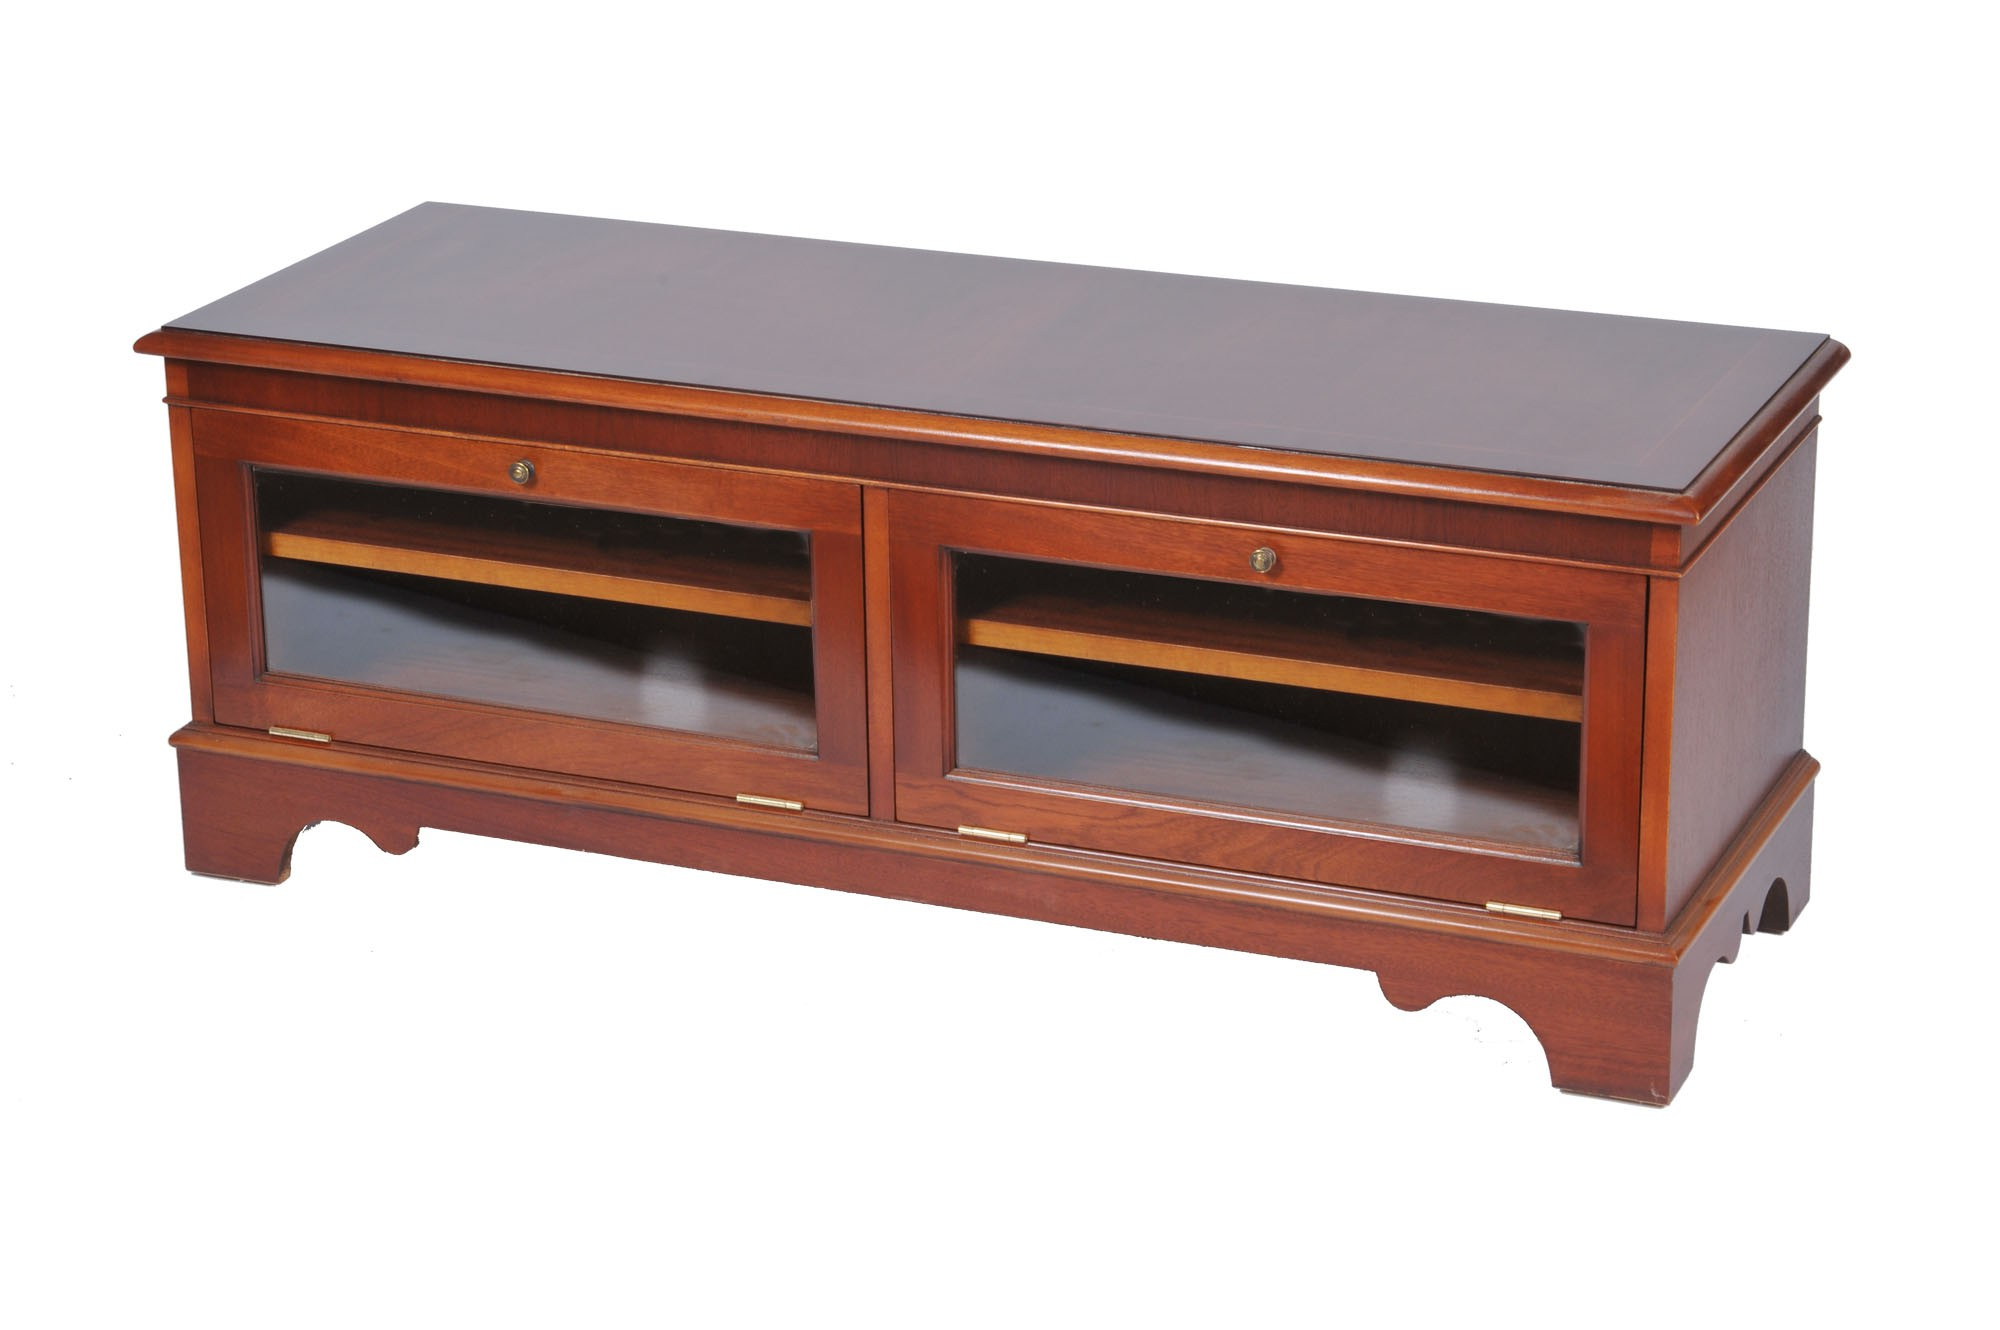 Wide Screen Tv Stands For Well Known Bradley Mahogany 924 Wide Screen Tv Stand (View 18 of 20)